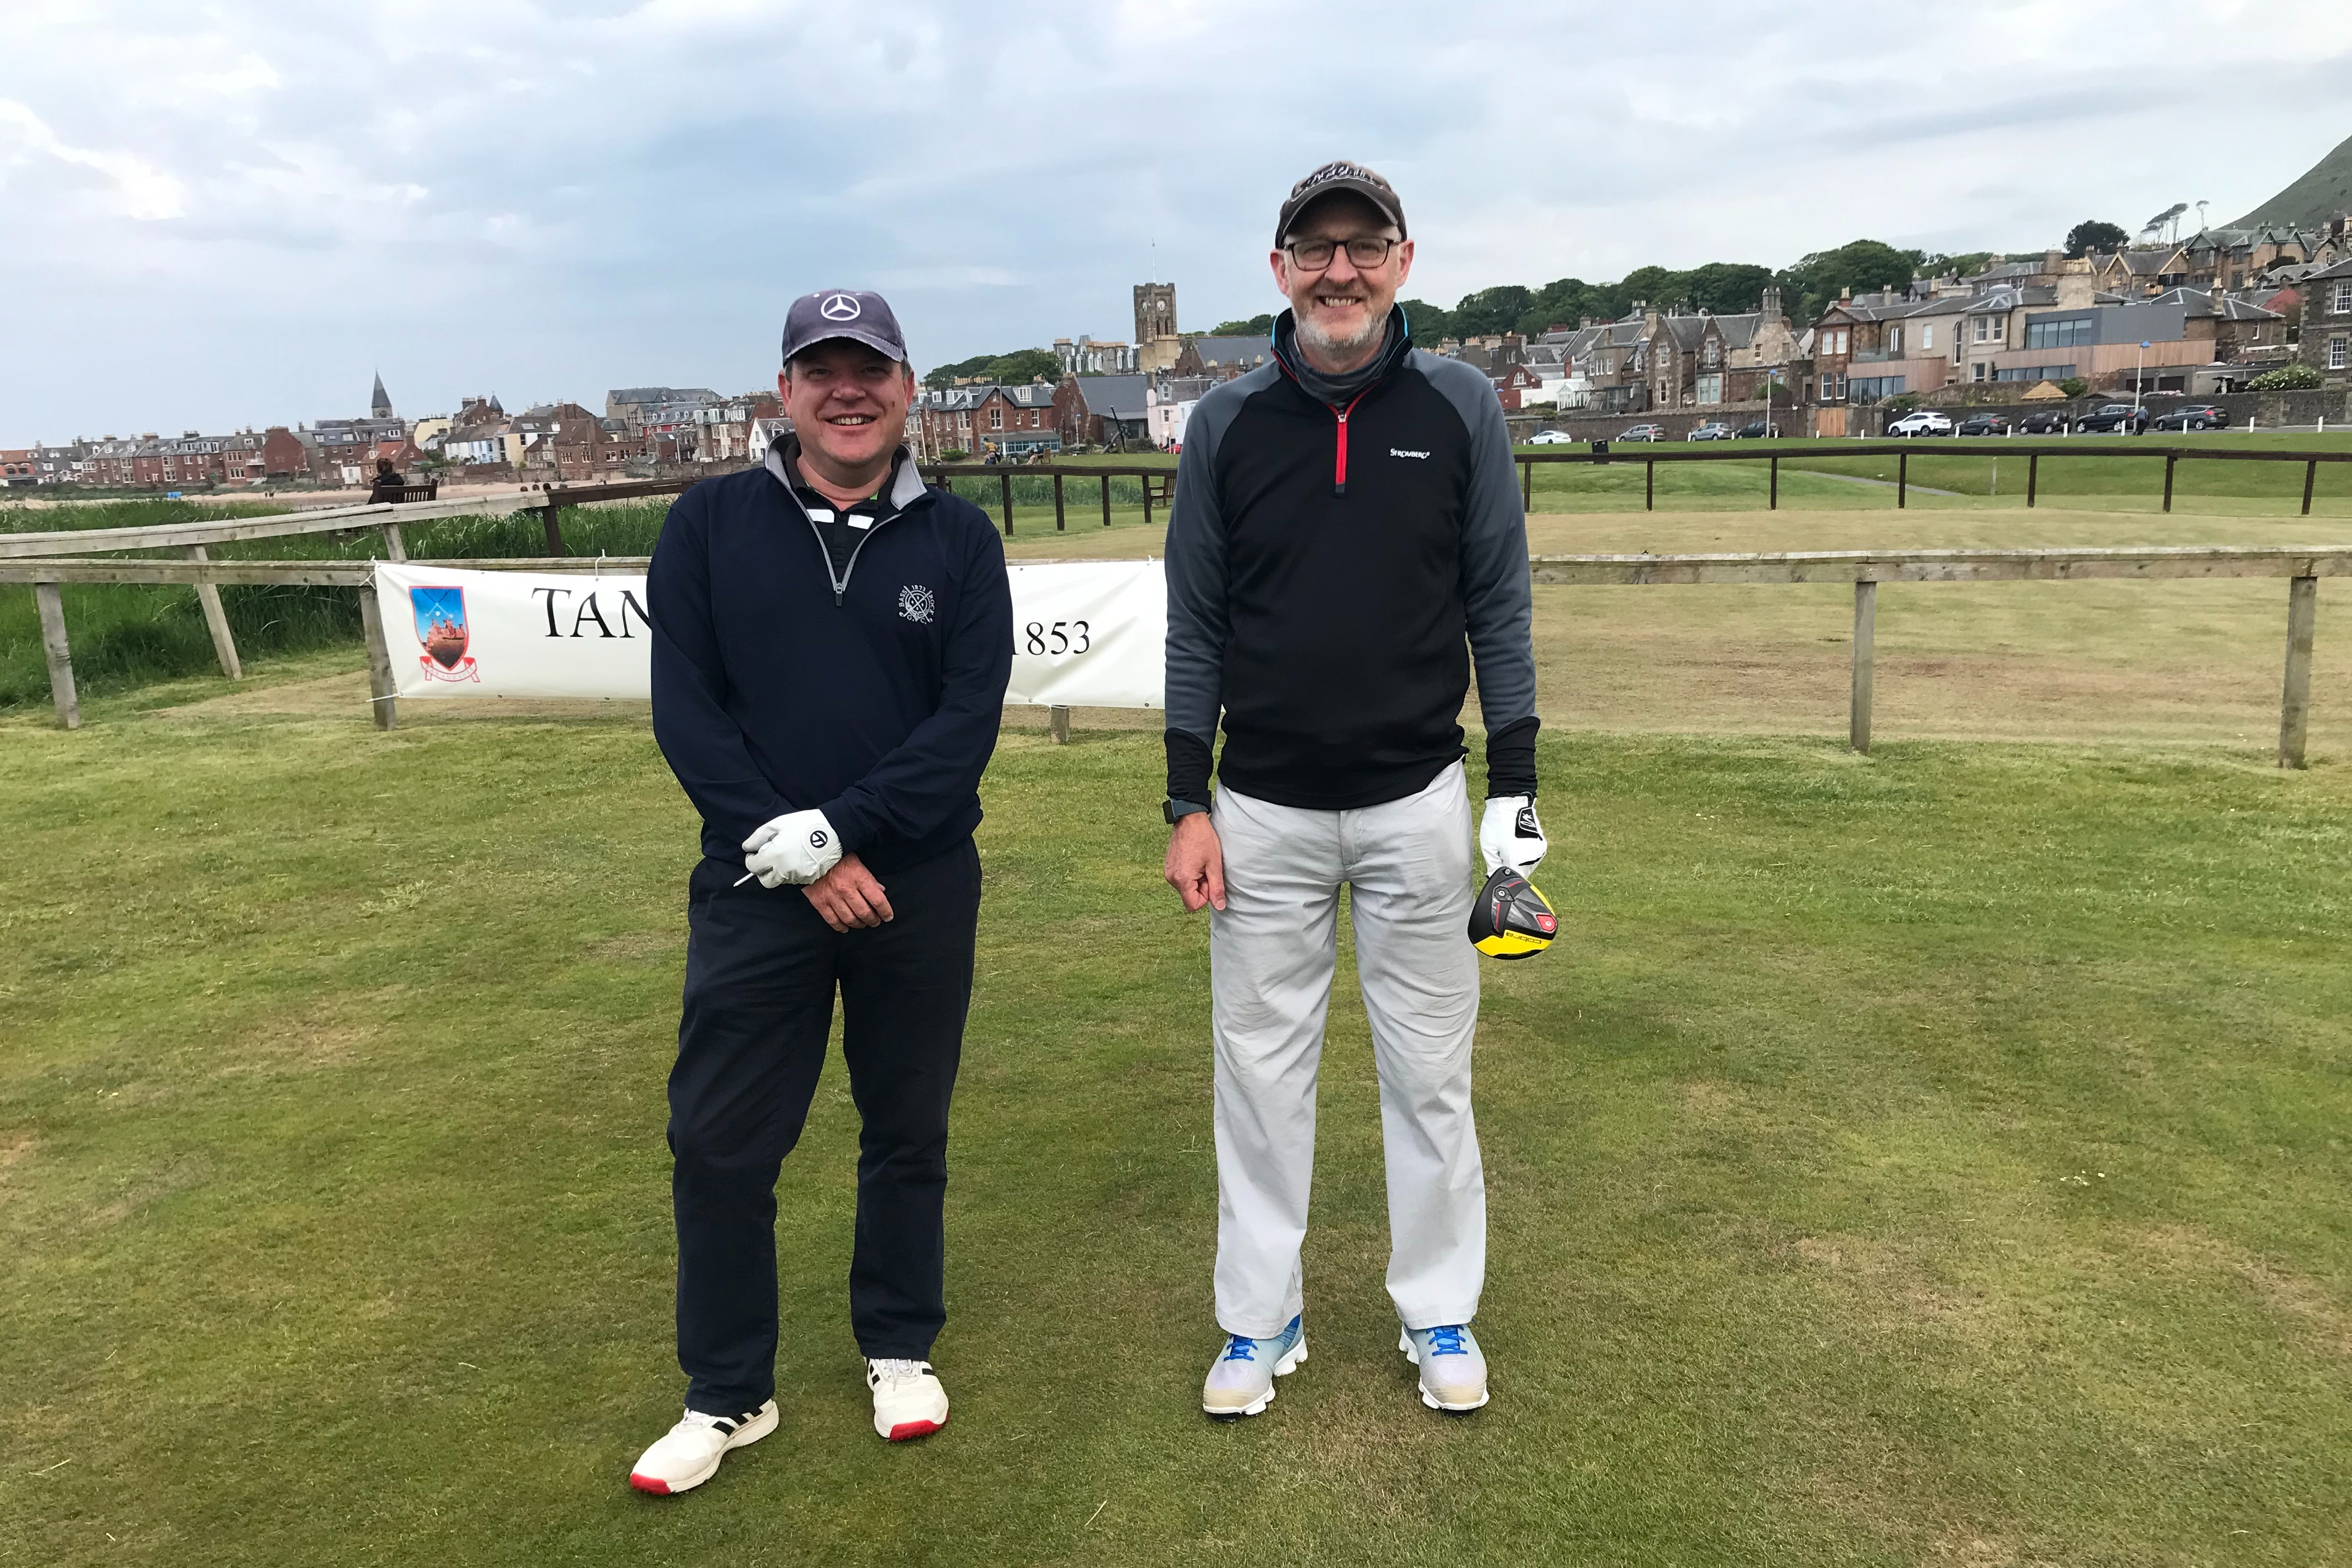 Colin Adamson (right) had a great battle with the 'Bomber' and came through 3 & 2